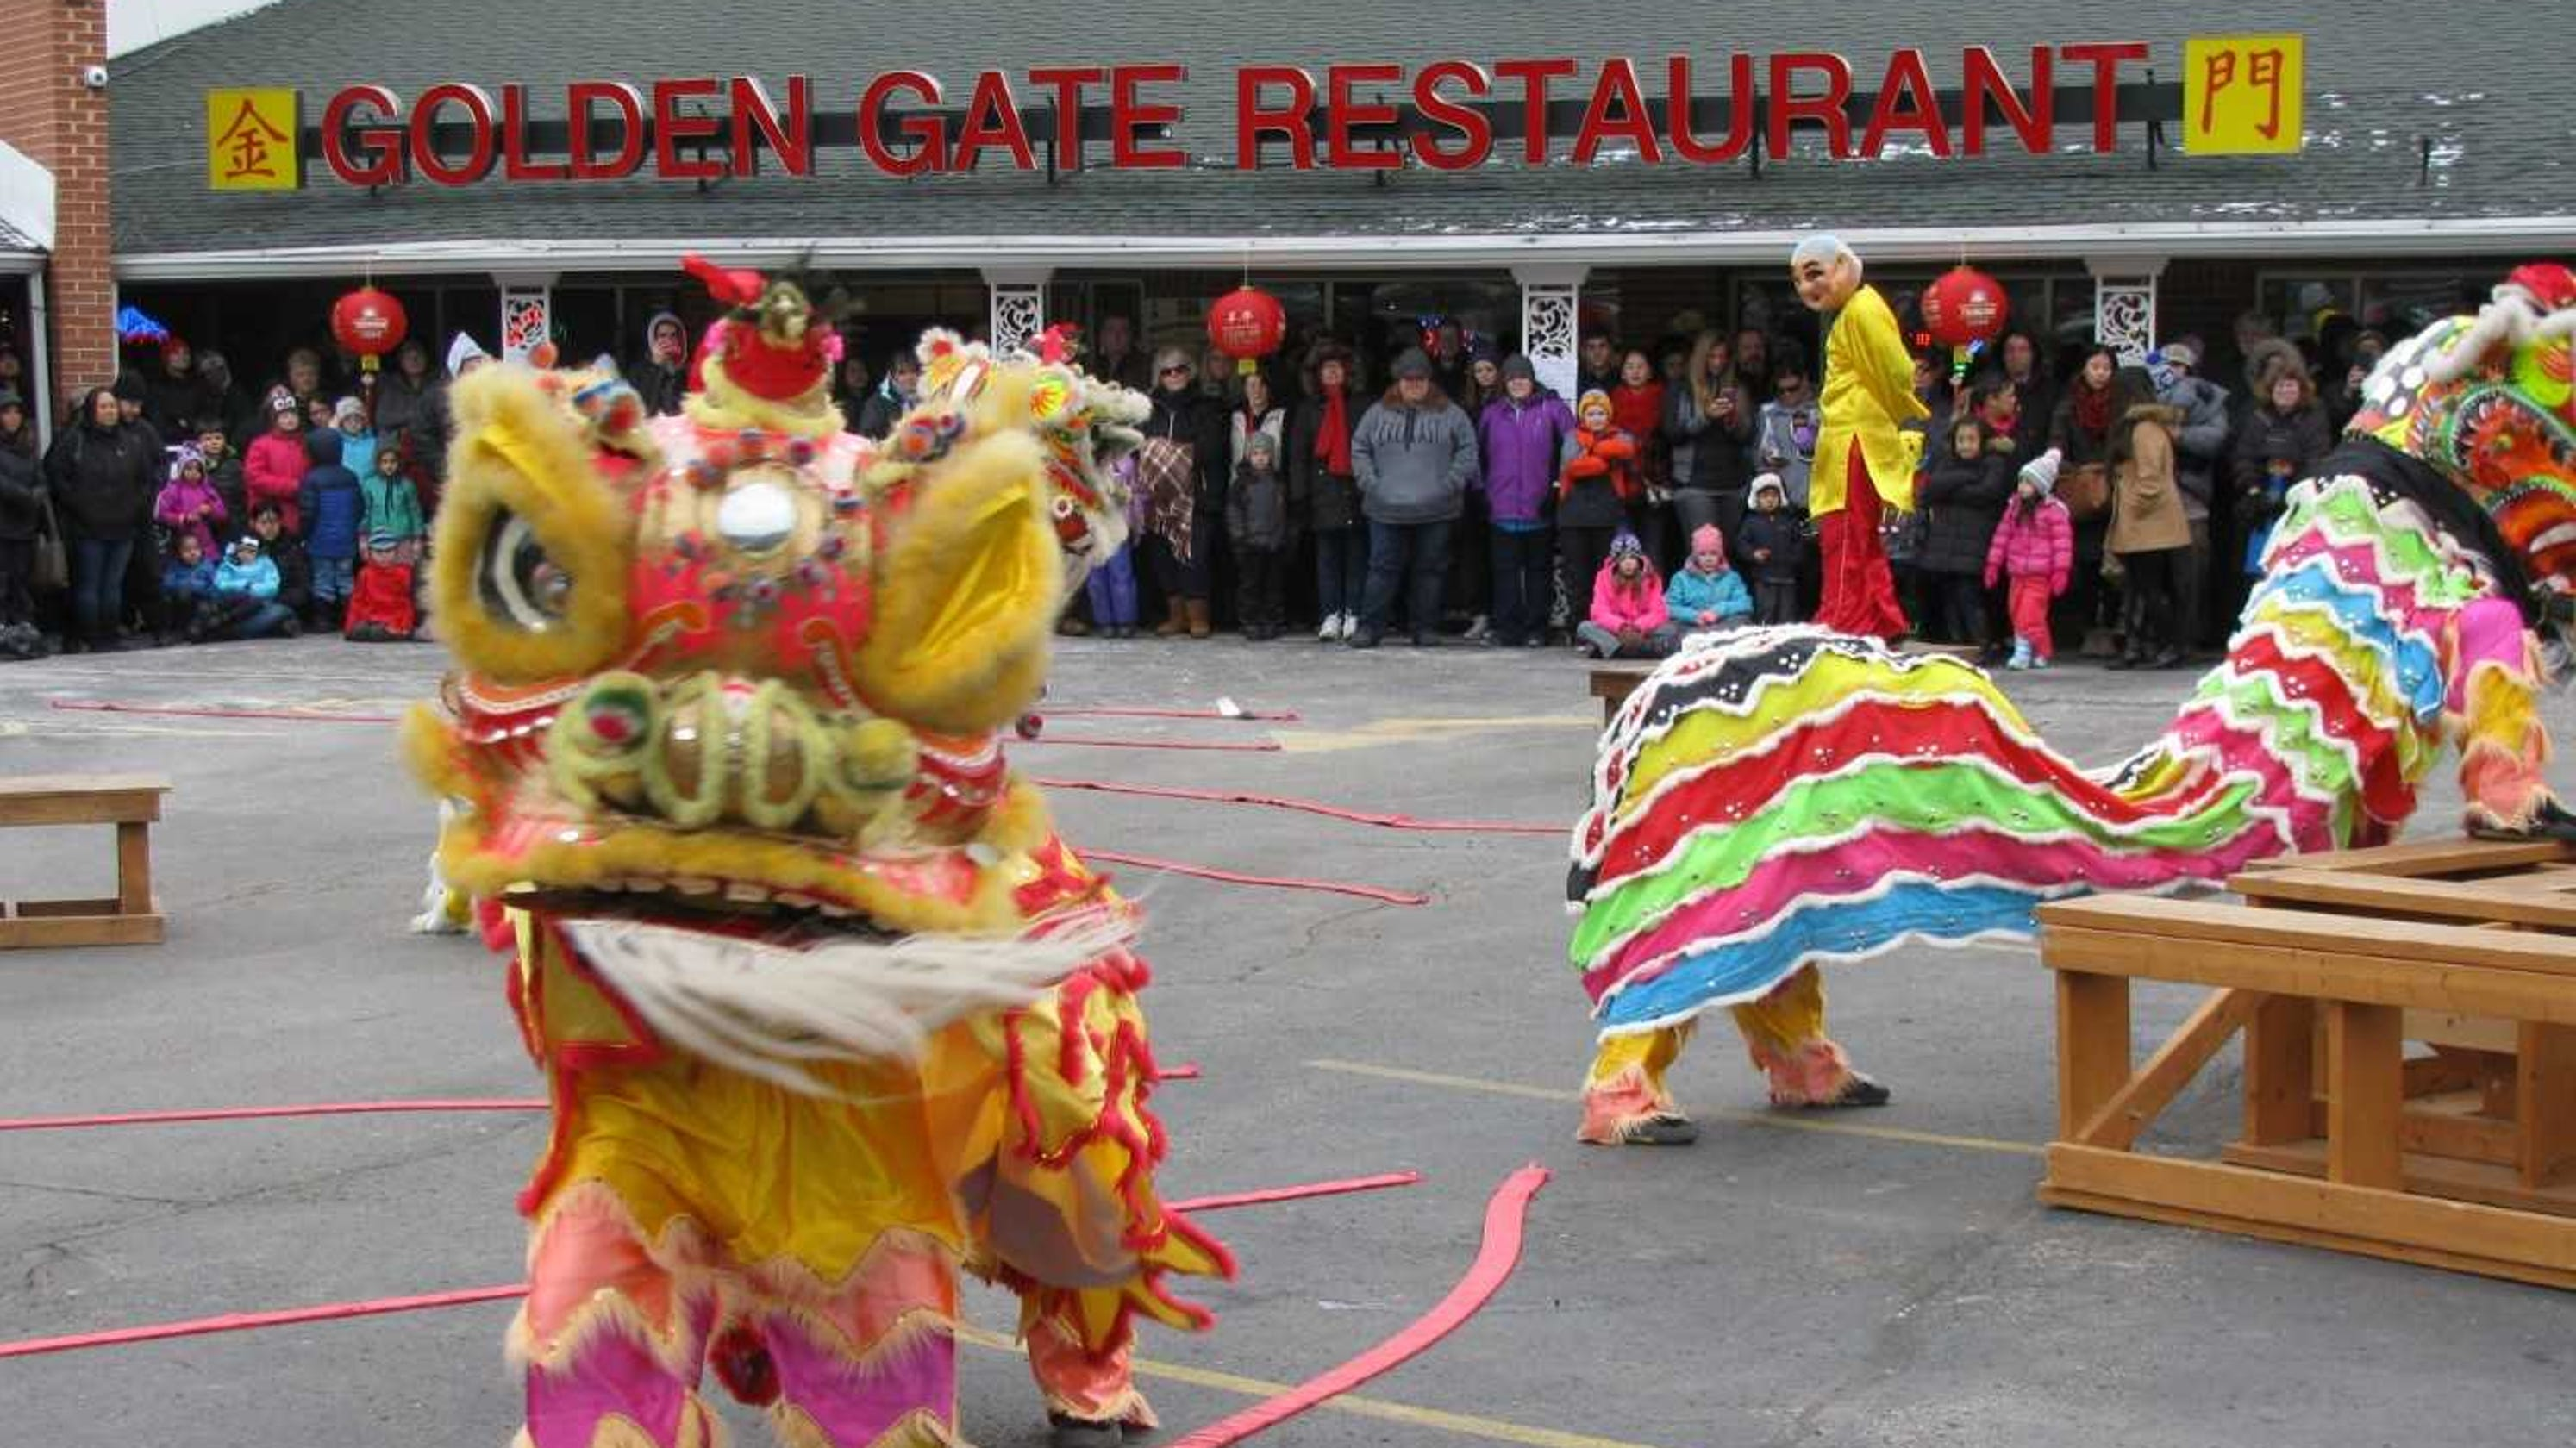 Ring In The Chinese New Year At Golden Gate Restaurant In Waukesha